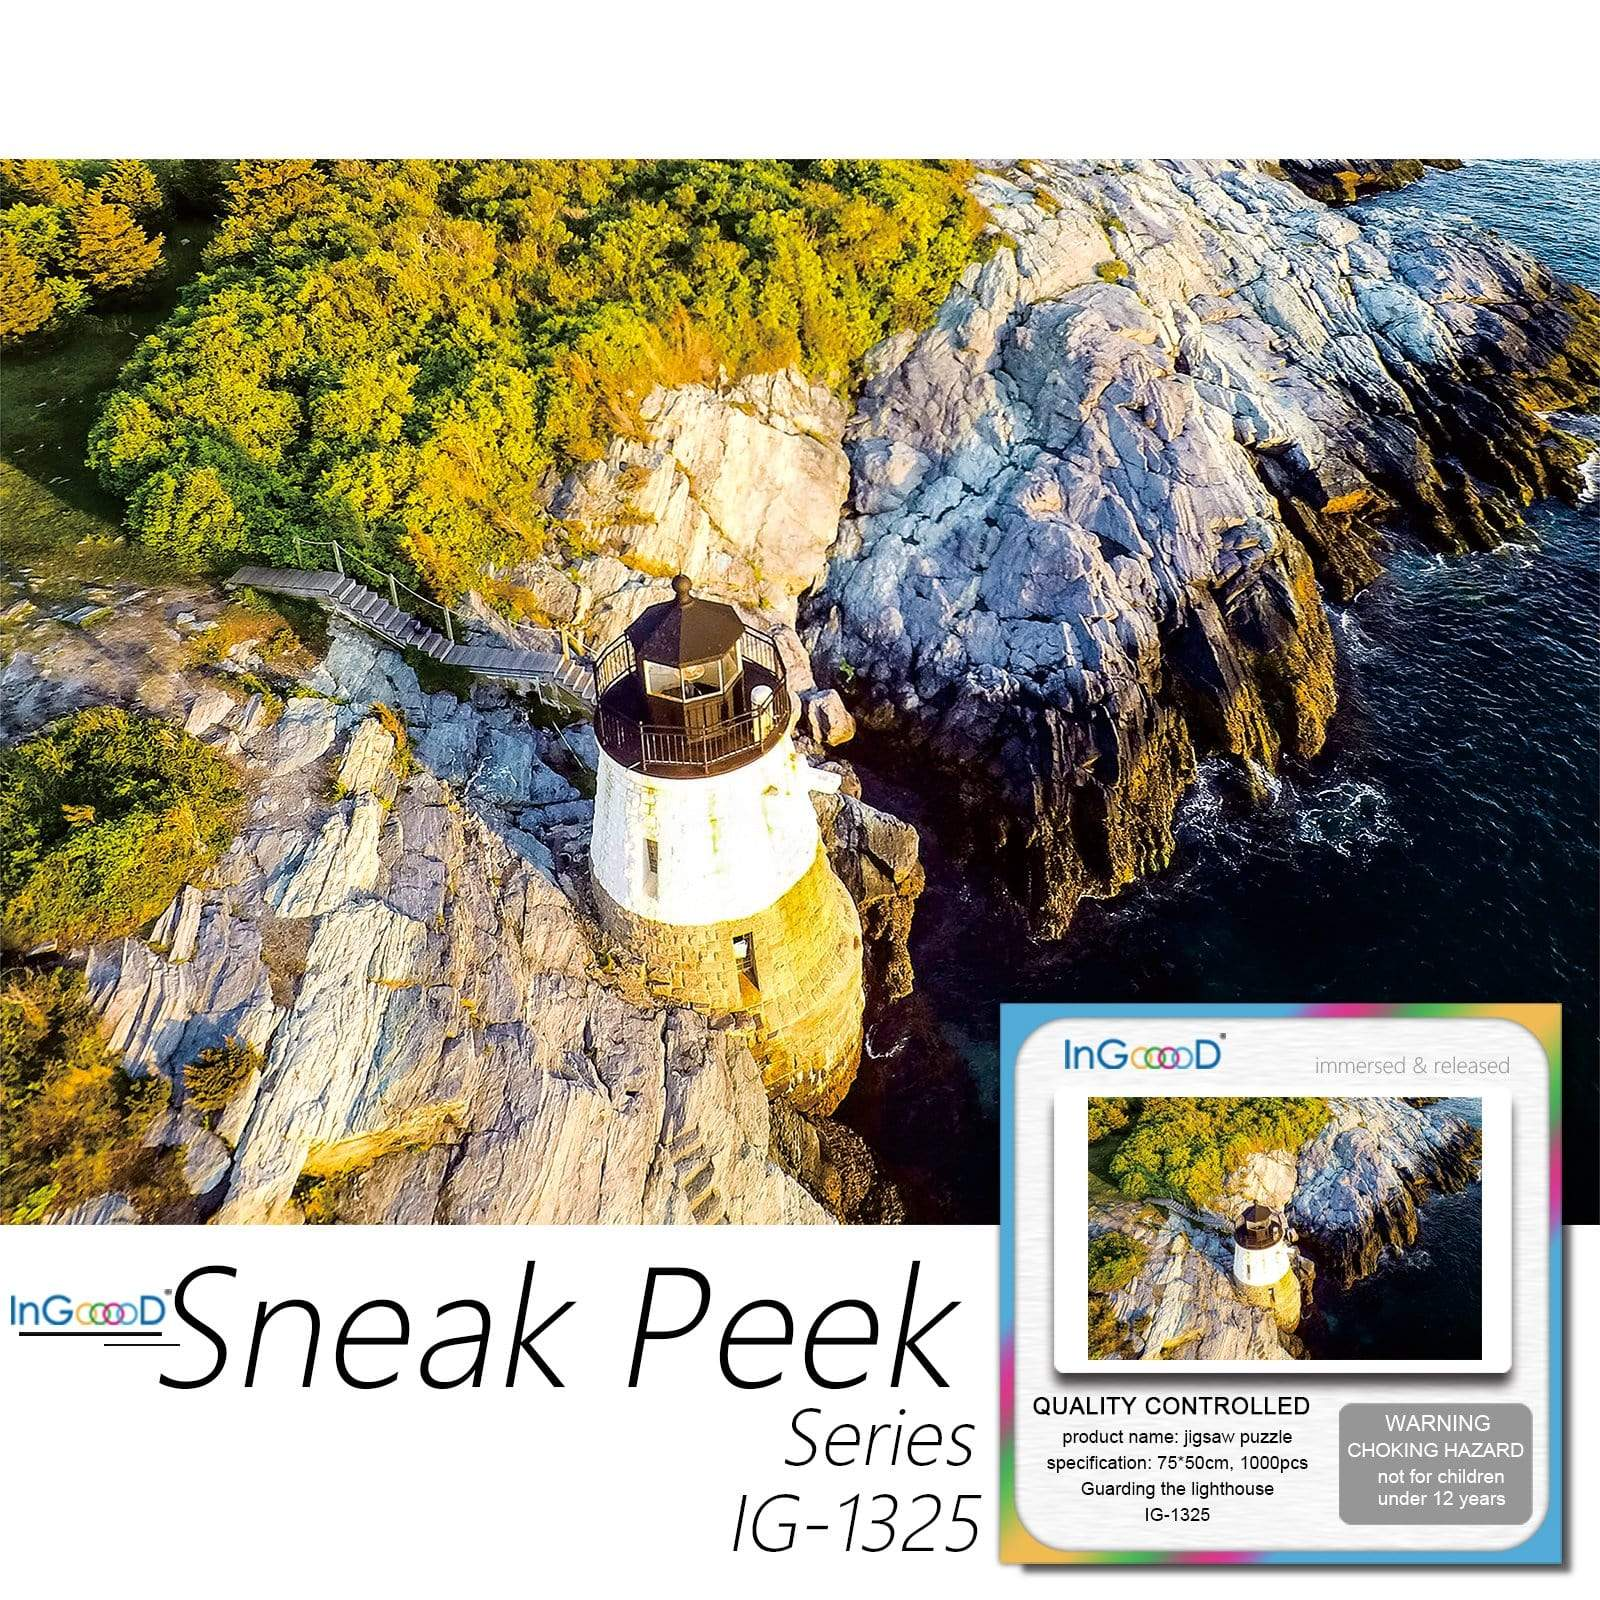 Ingooood-Jigsaw Puzzle 1000 Pieces-Sneak Peek Series-Guarding the lighthouse_IG-1325 Entertainment Toys for Adult Special Graduation or Birthday Gift Home Decor - Ingooood